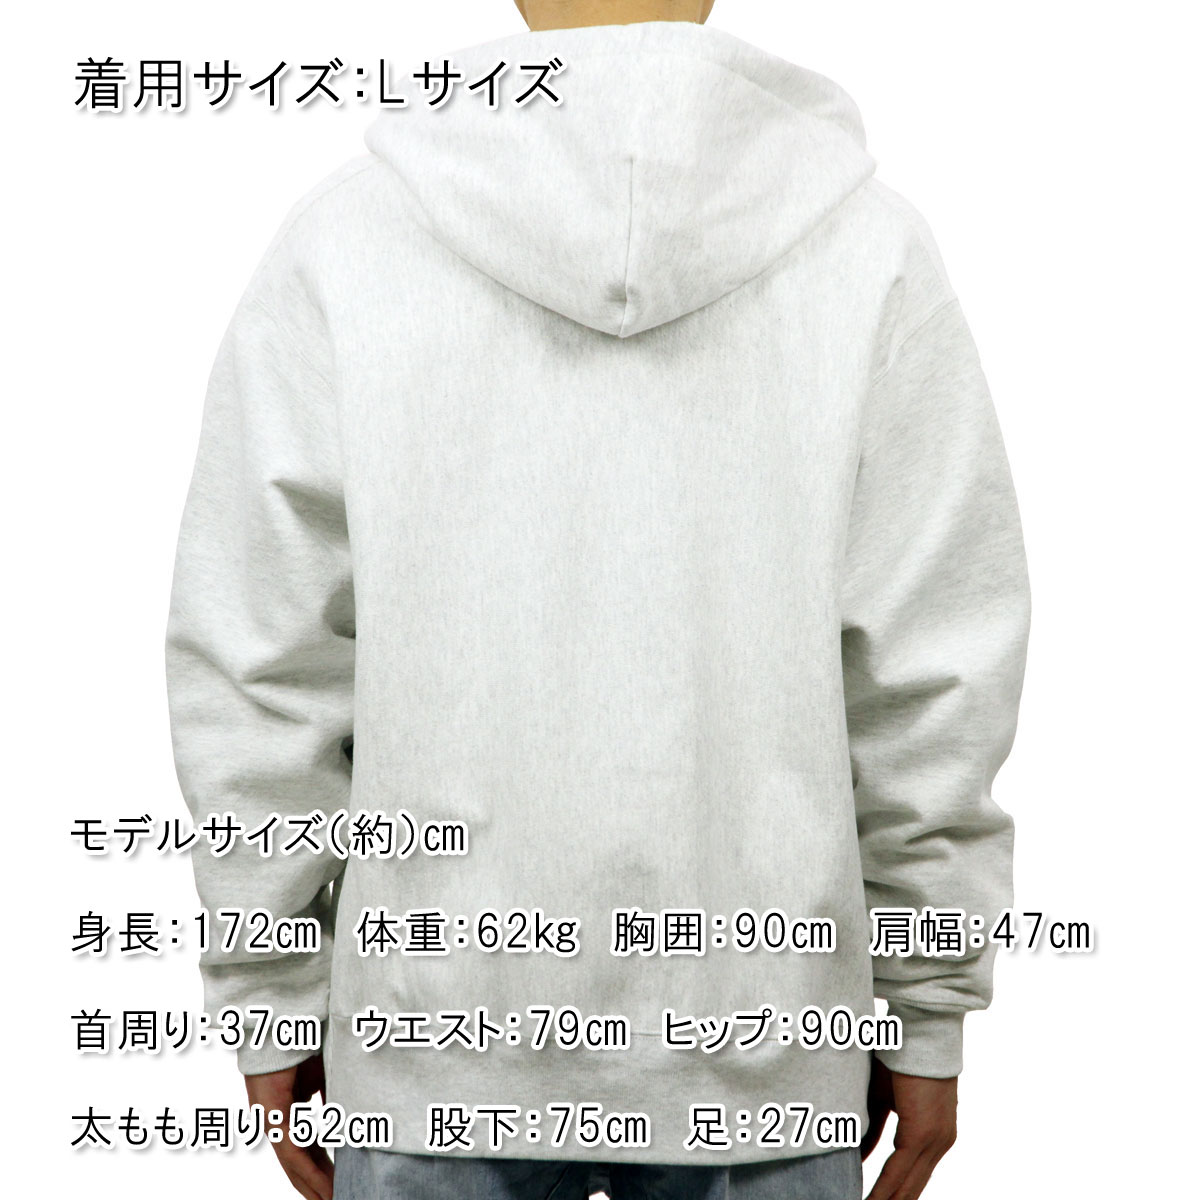 チャンピオン CHAMPION 正規品 メンズ リバースウィーブ ジップアップパーカー REVERSE WEAVE HEAVYWEIGHT 12oz ZIP UP HOODIE GF69 SILVER HEATHER AA4B B1C C1D D5E E02F